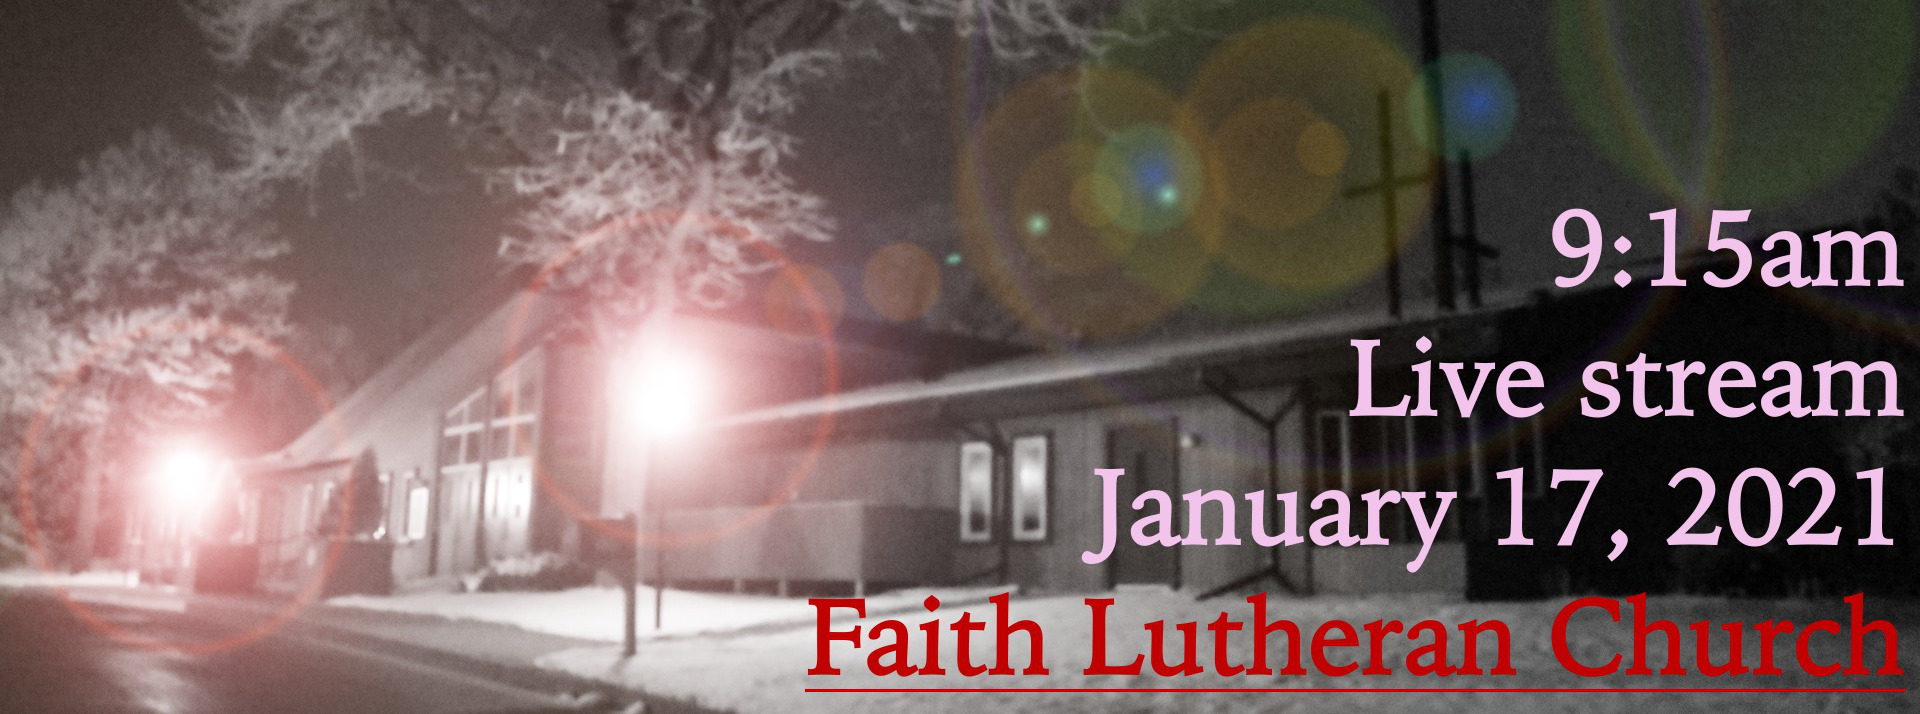 Live Stream YT or FB for the Second Sunday After Epiphany, January 17